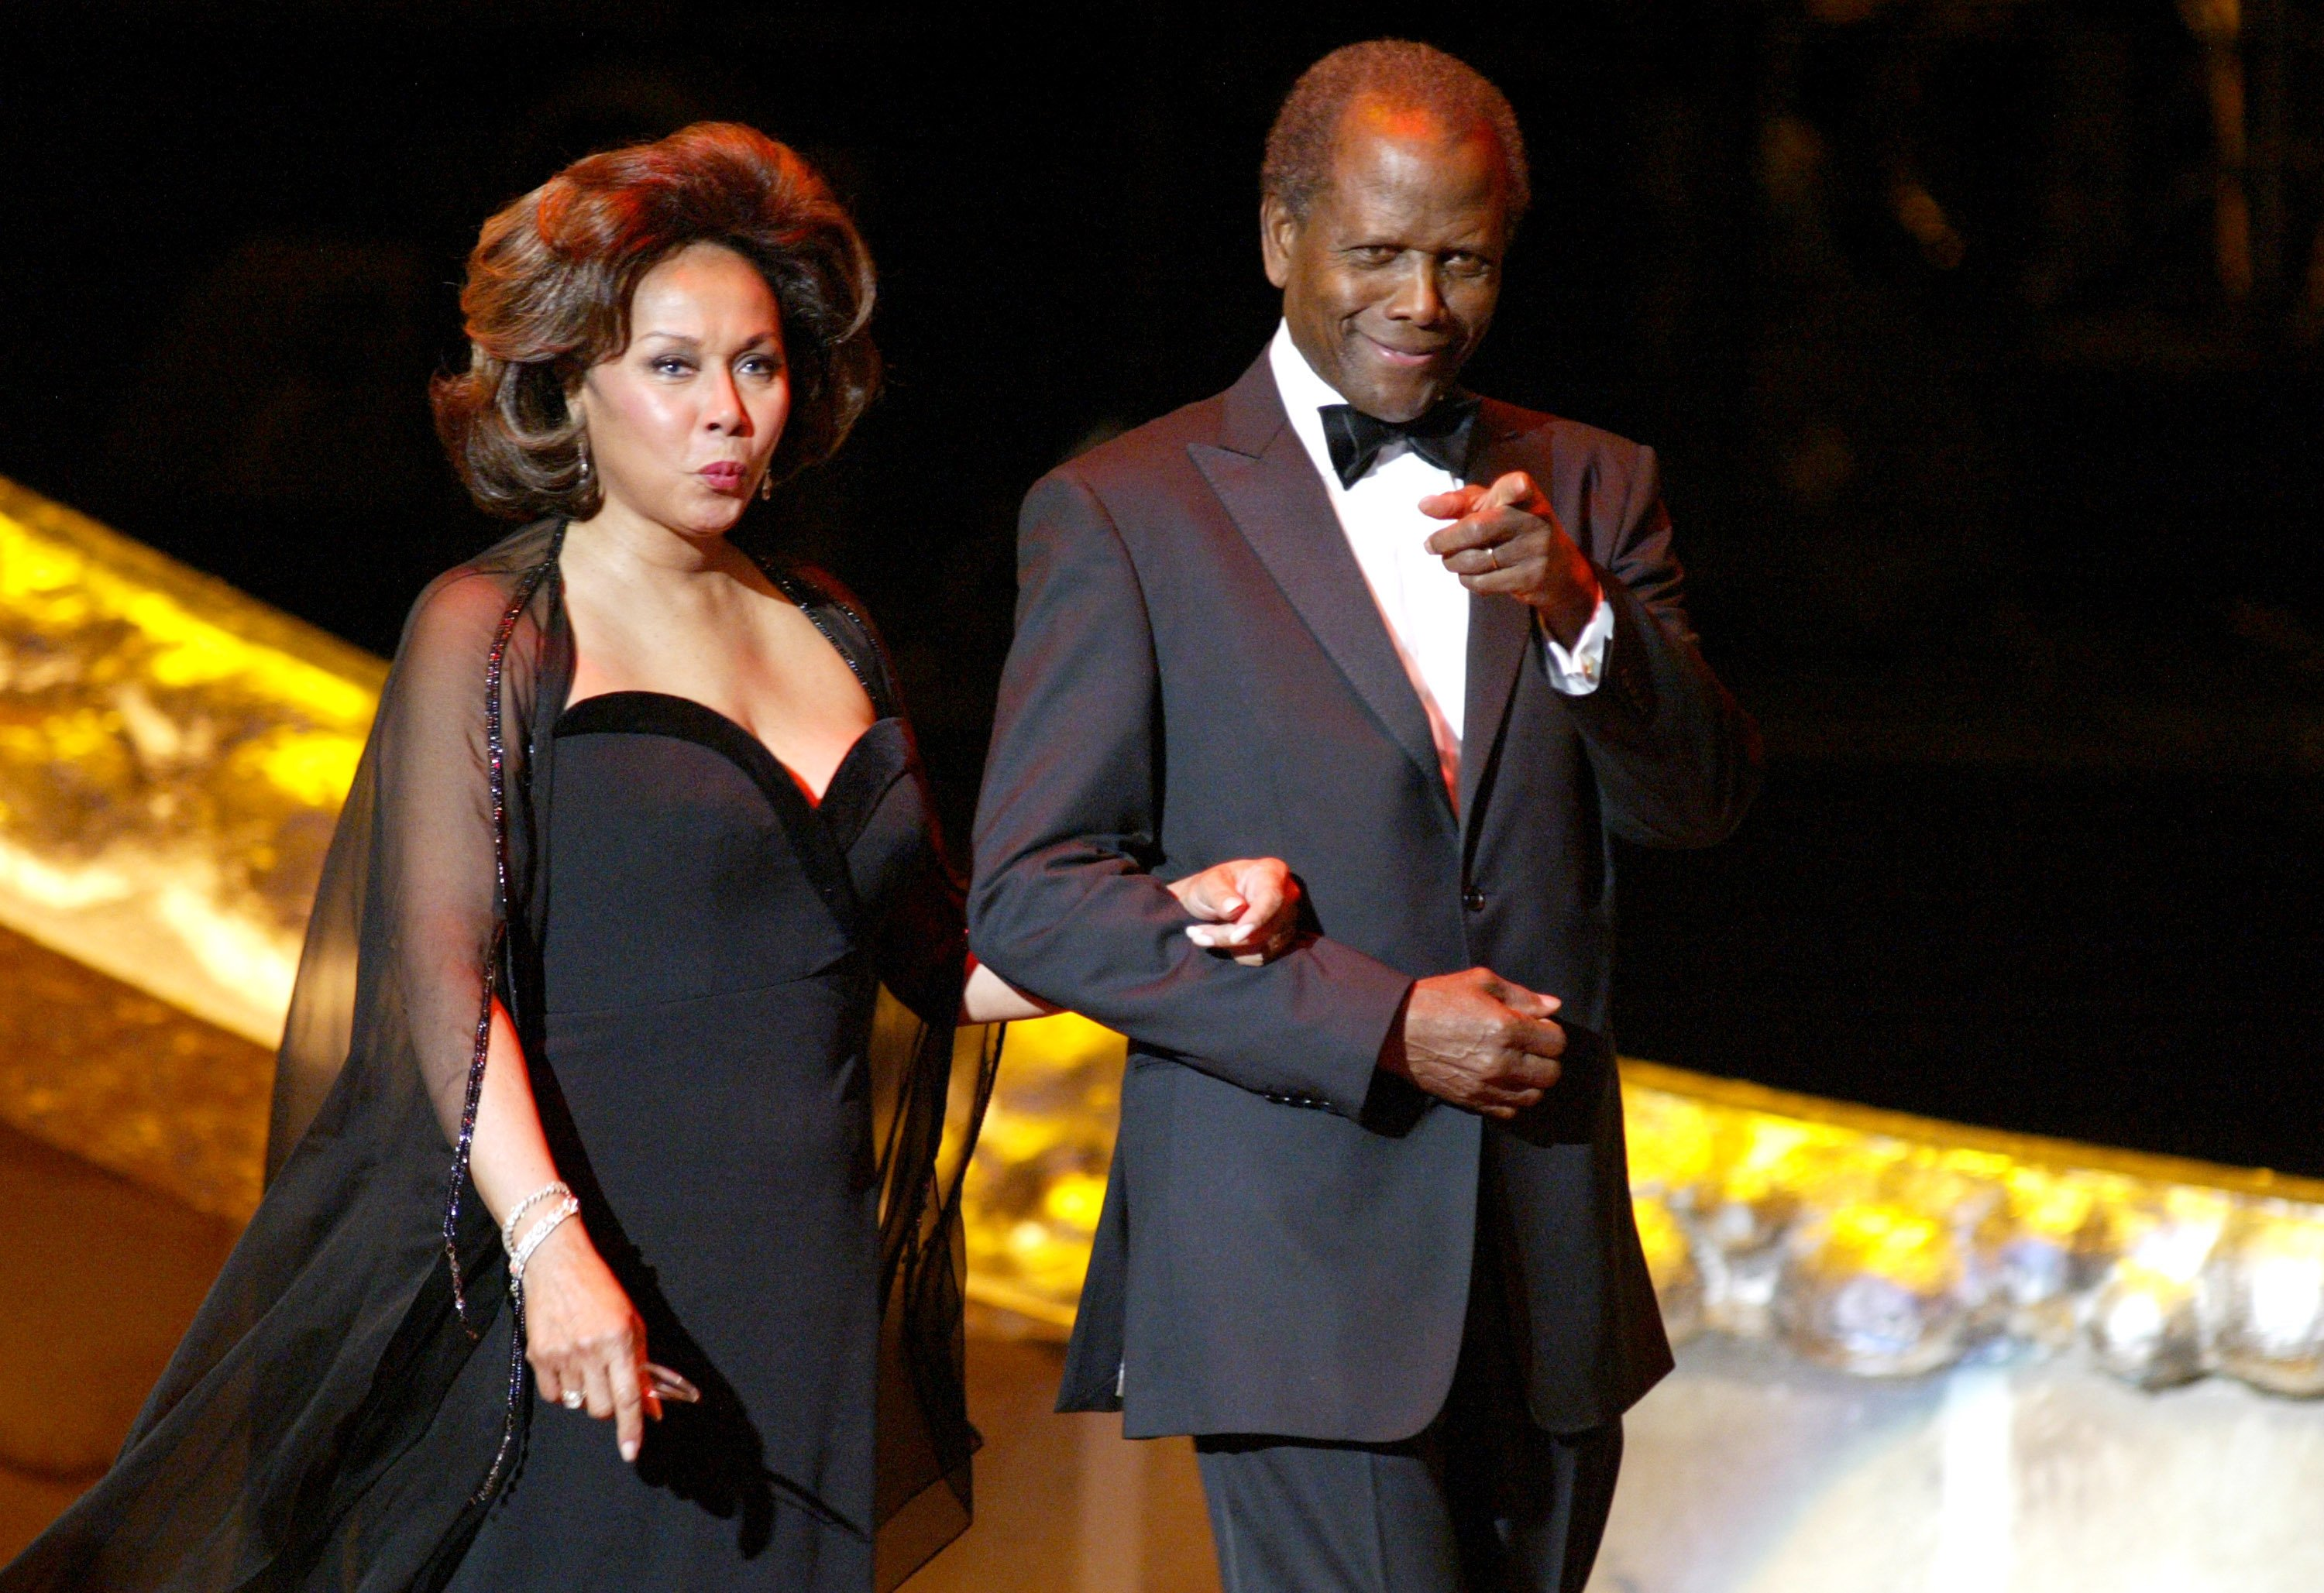 Diahann Carroll and Sidney Poitier at the 36th Annual NAACP Image Awards on March 19, 2005 | Photo: Getty Images